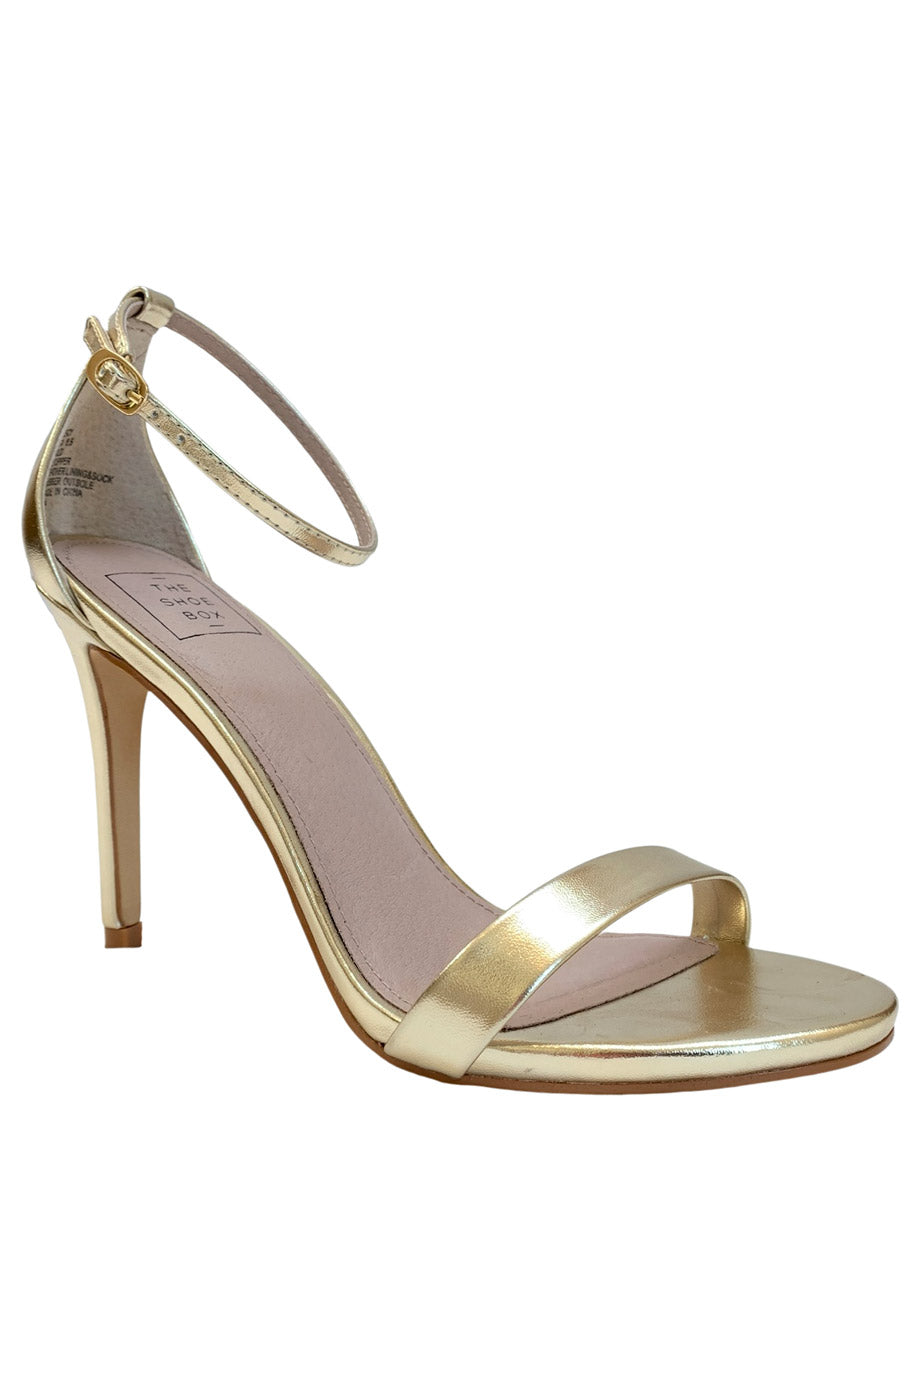 The Shoe Box NYC Metallic Gold Strappy High Heel Sandals / Sz 8.5